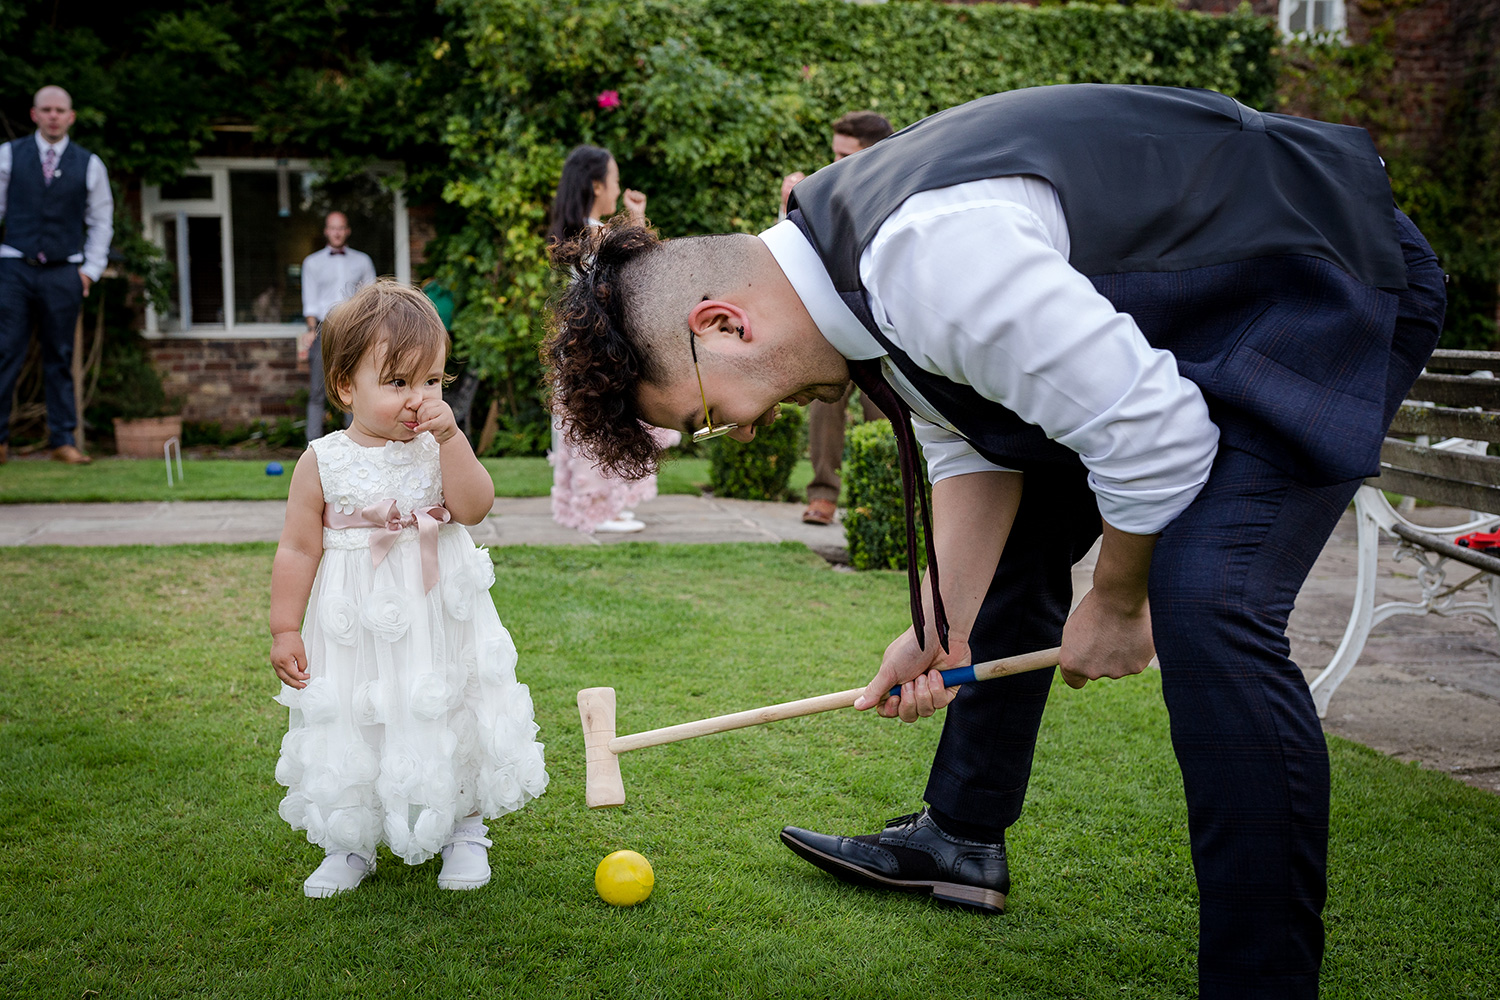 Garden games at a Hilltop Country House Wedding